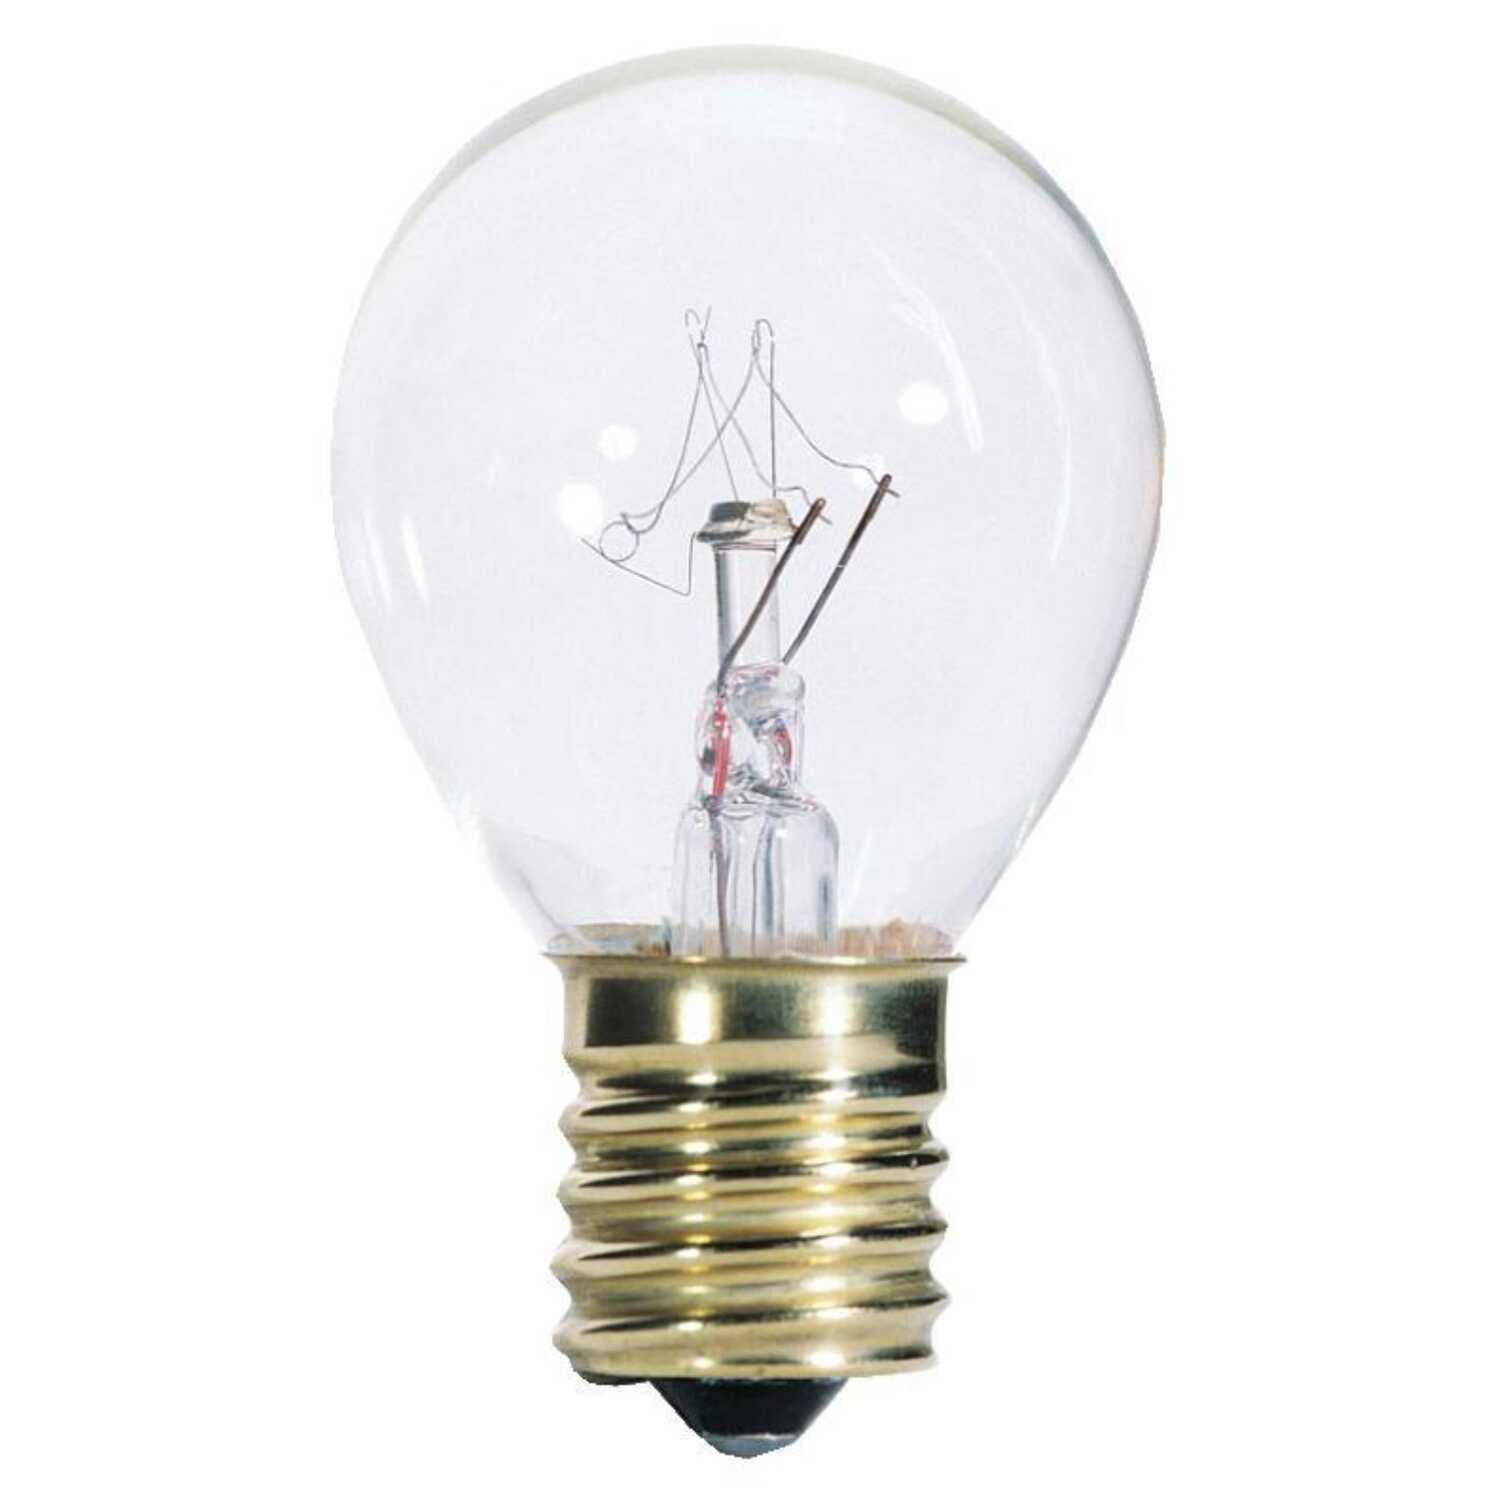 Westinghouse  25 watts S11  Incandescent Bulb  180 lumens White  Speciality  1 pk